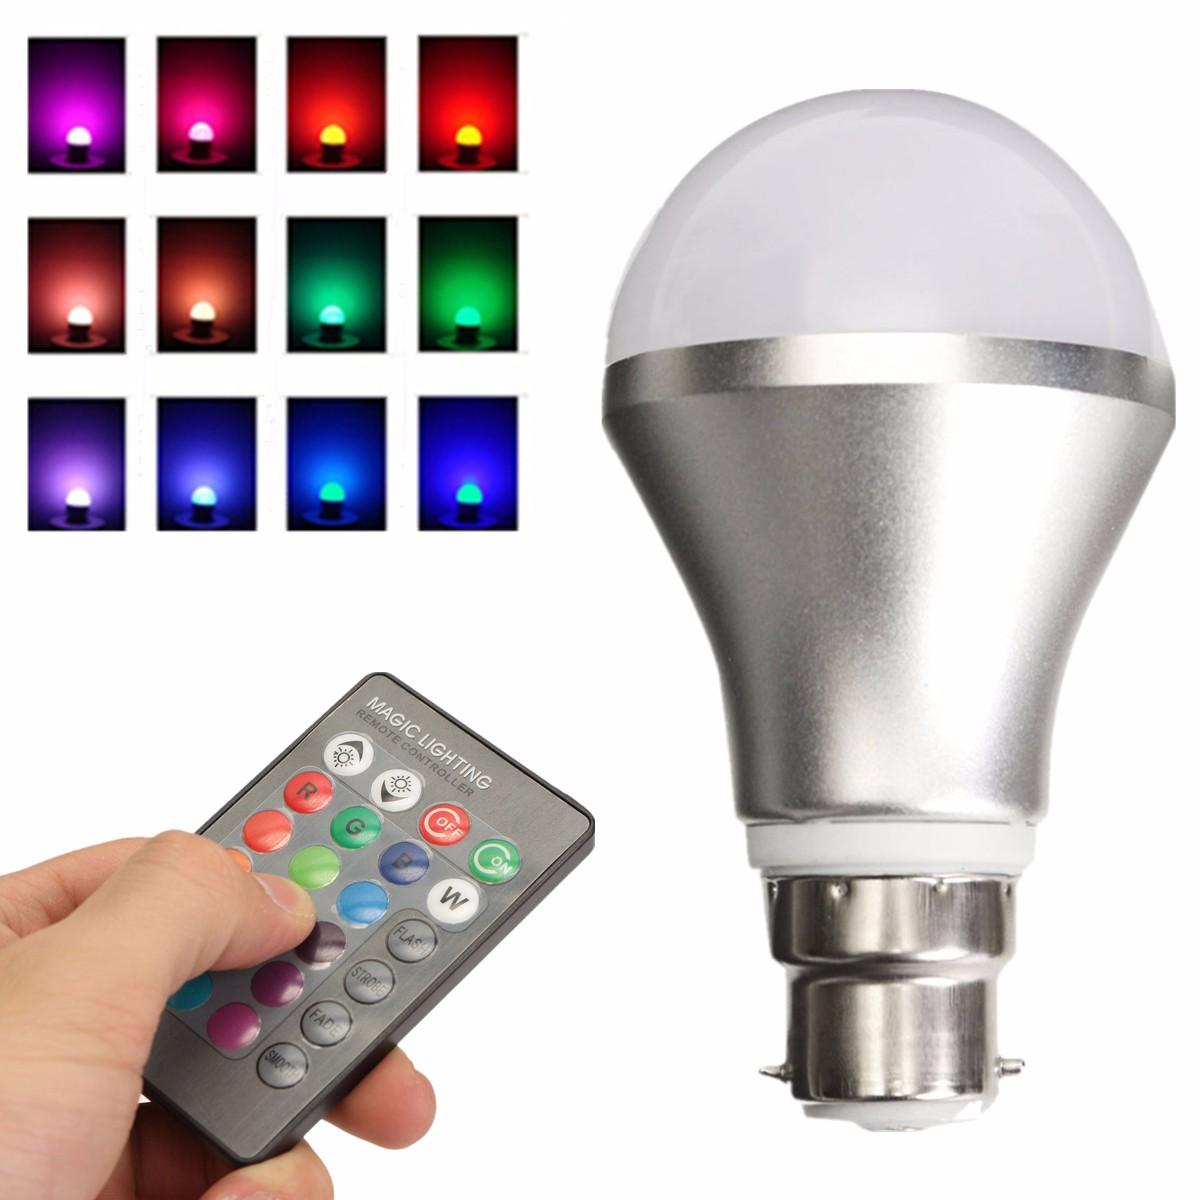 Dimmable Rgb Color Changing 4w B22 Led Light Bulb Bayonet With Ir Control Leds On Off Remote And Arduino P Marian Infrared Controller